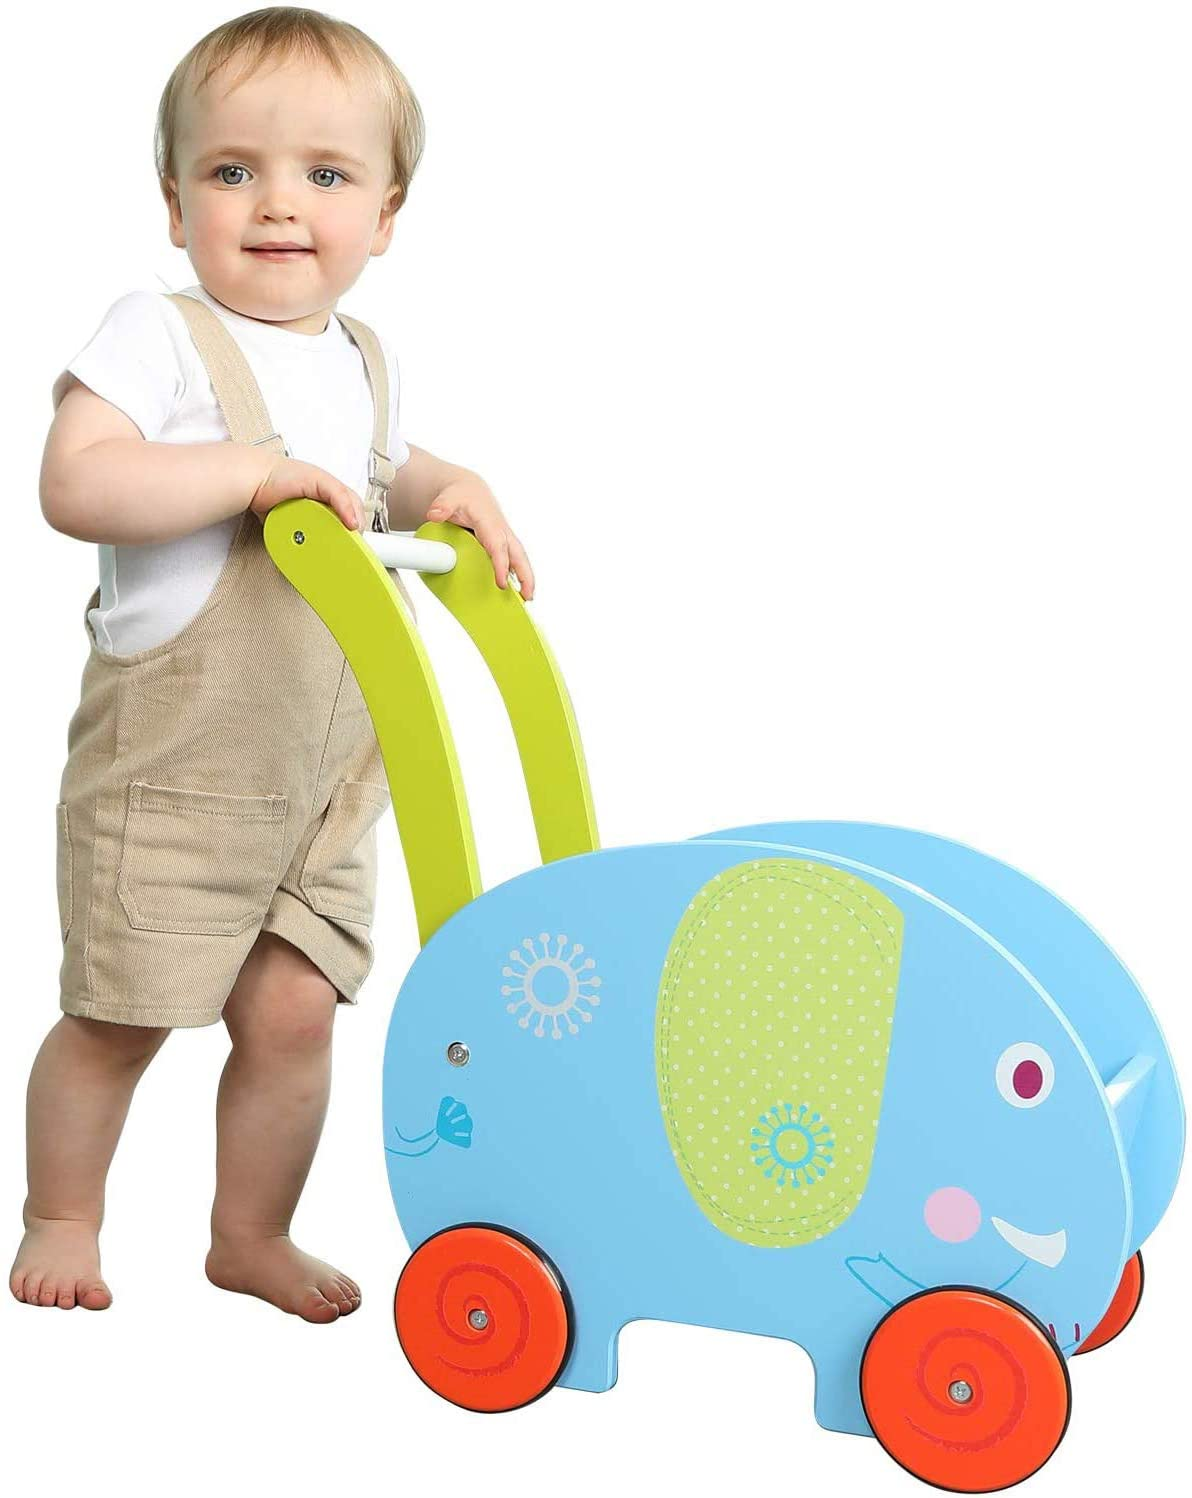 TOYSBBS Baby Walker Toy for Girl&Boy, Push/Pull Wagon Cart for Kid, 4 Wheels Learning Walker Blue, Elephant Push Toy Stroller for Toddler 1-3 Years Old, Toy Shopping Cart, Wooden Toy Wagon for Infant